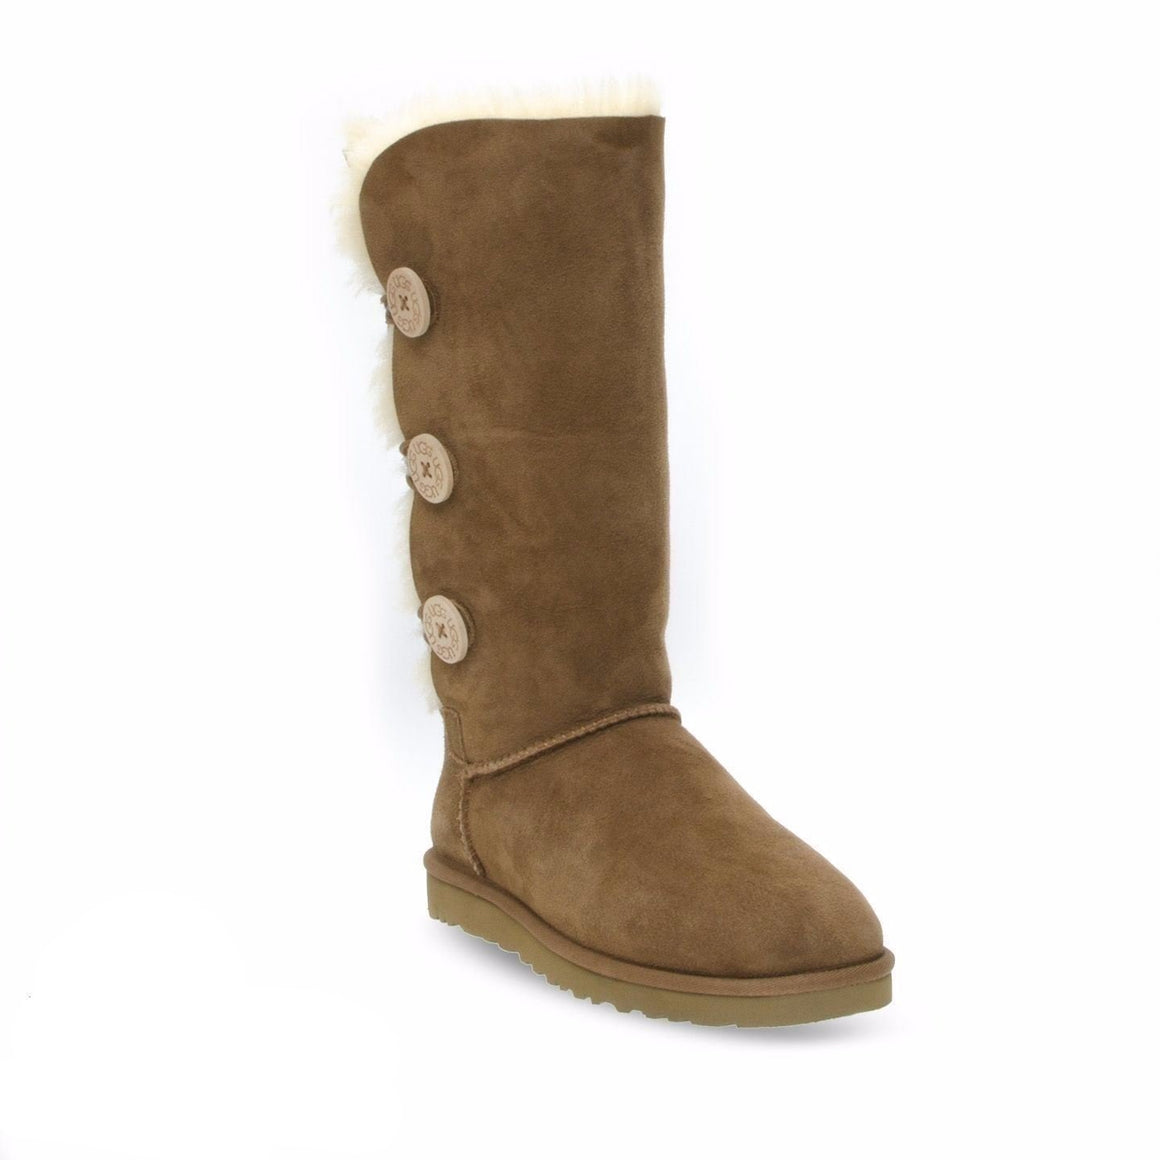 UGG Bailey Button Triplet II Chestnut Boots - Youth